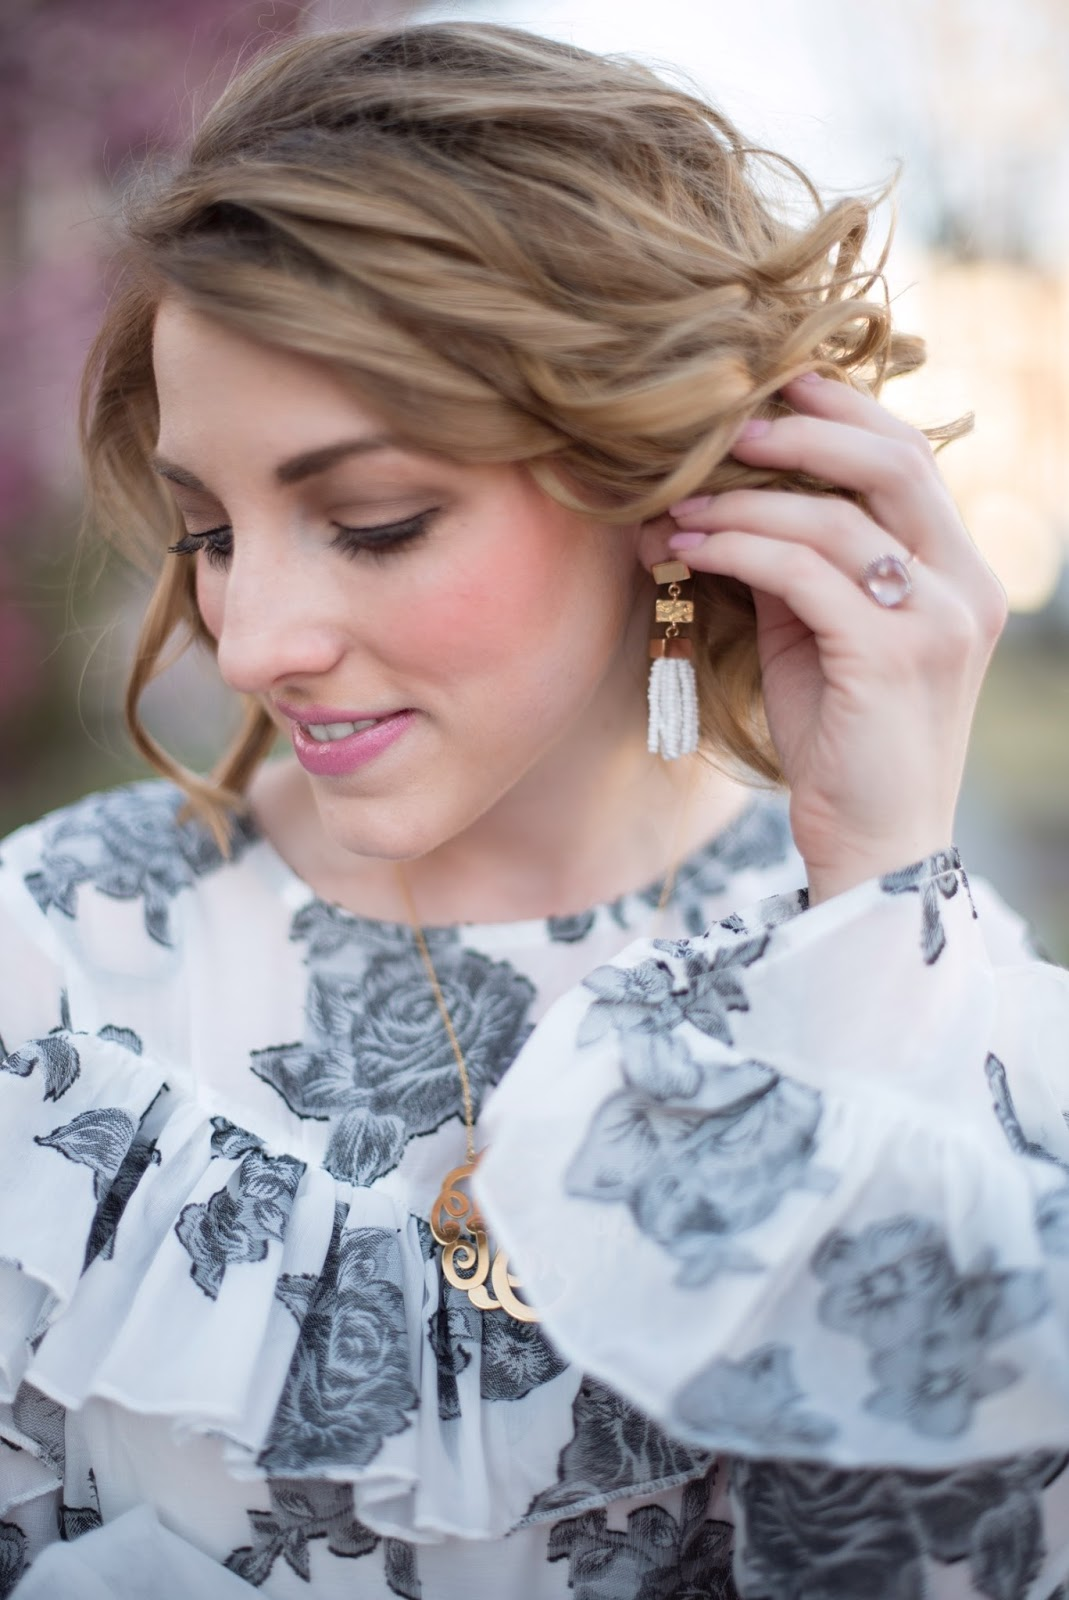 Statement Earrings - Something Delightful Blog